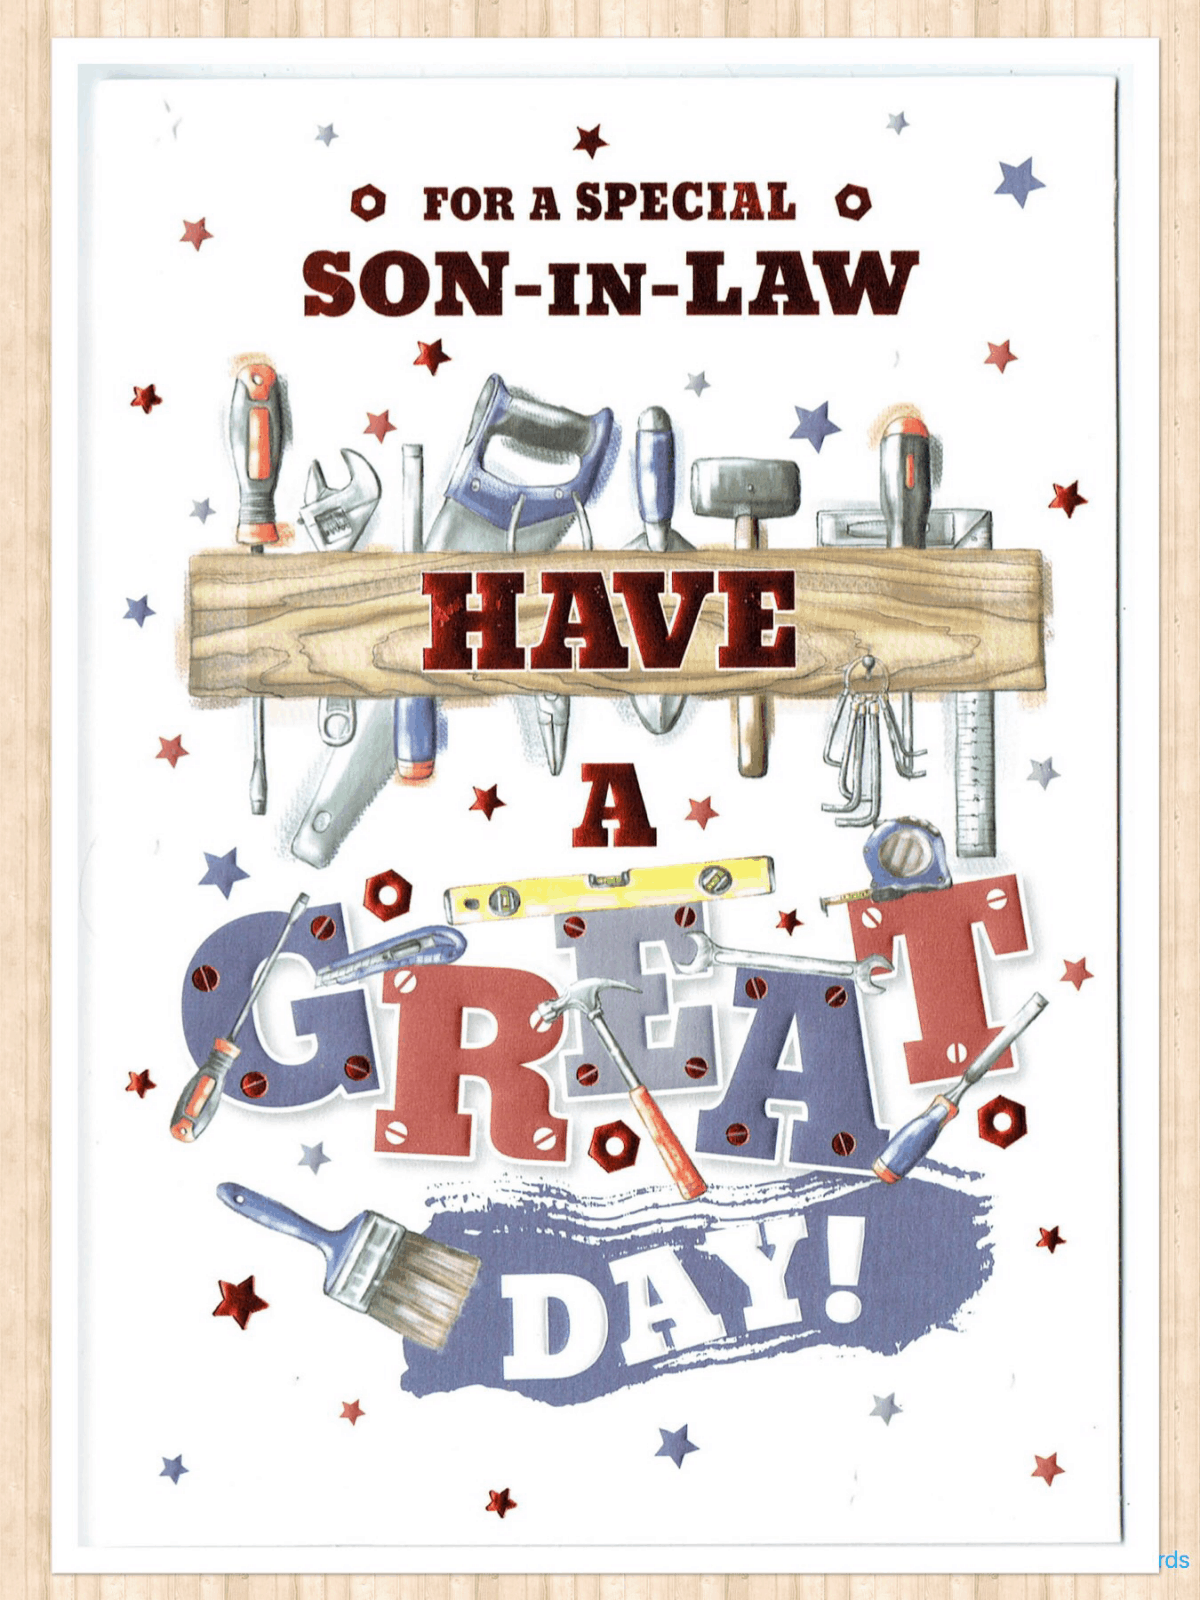 Son In Law Birthday Card With A DIY Tools Theme Free Postage 282940853527